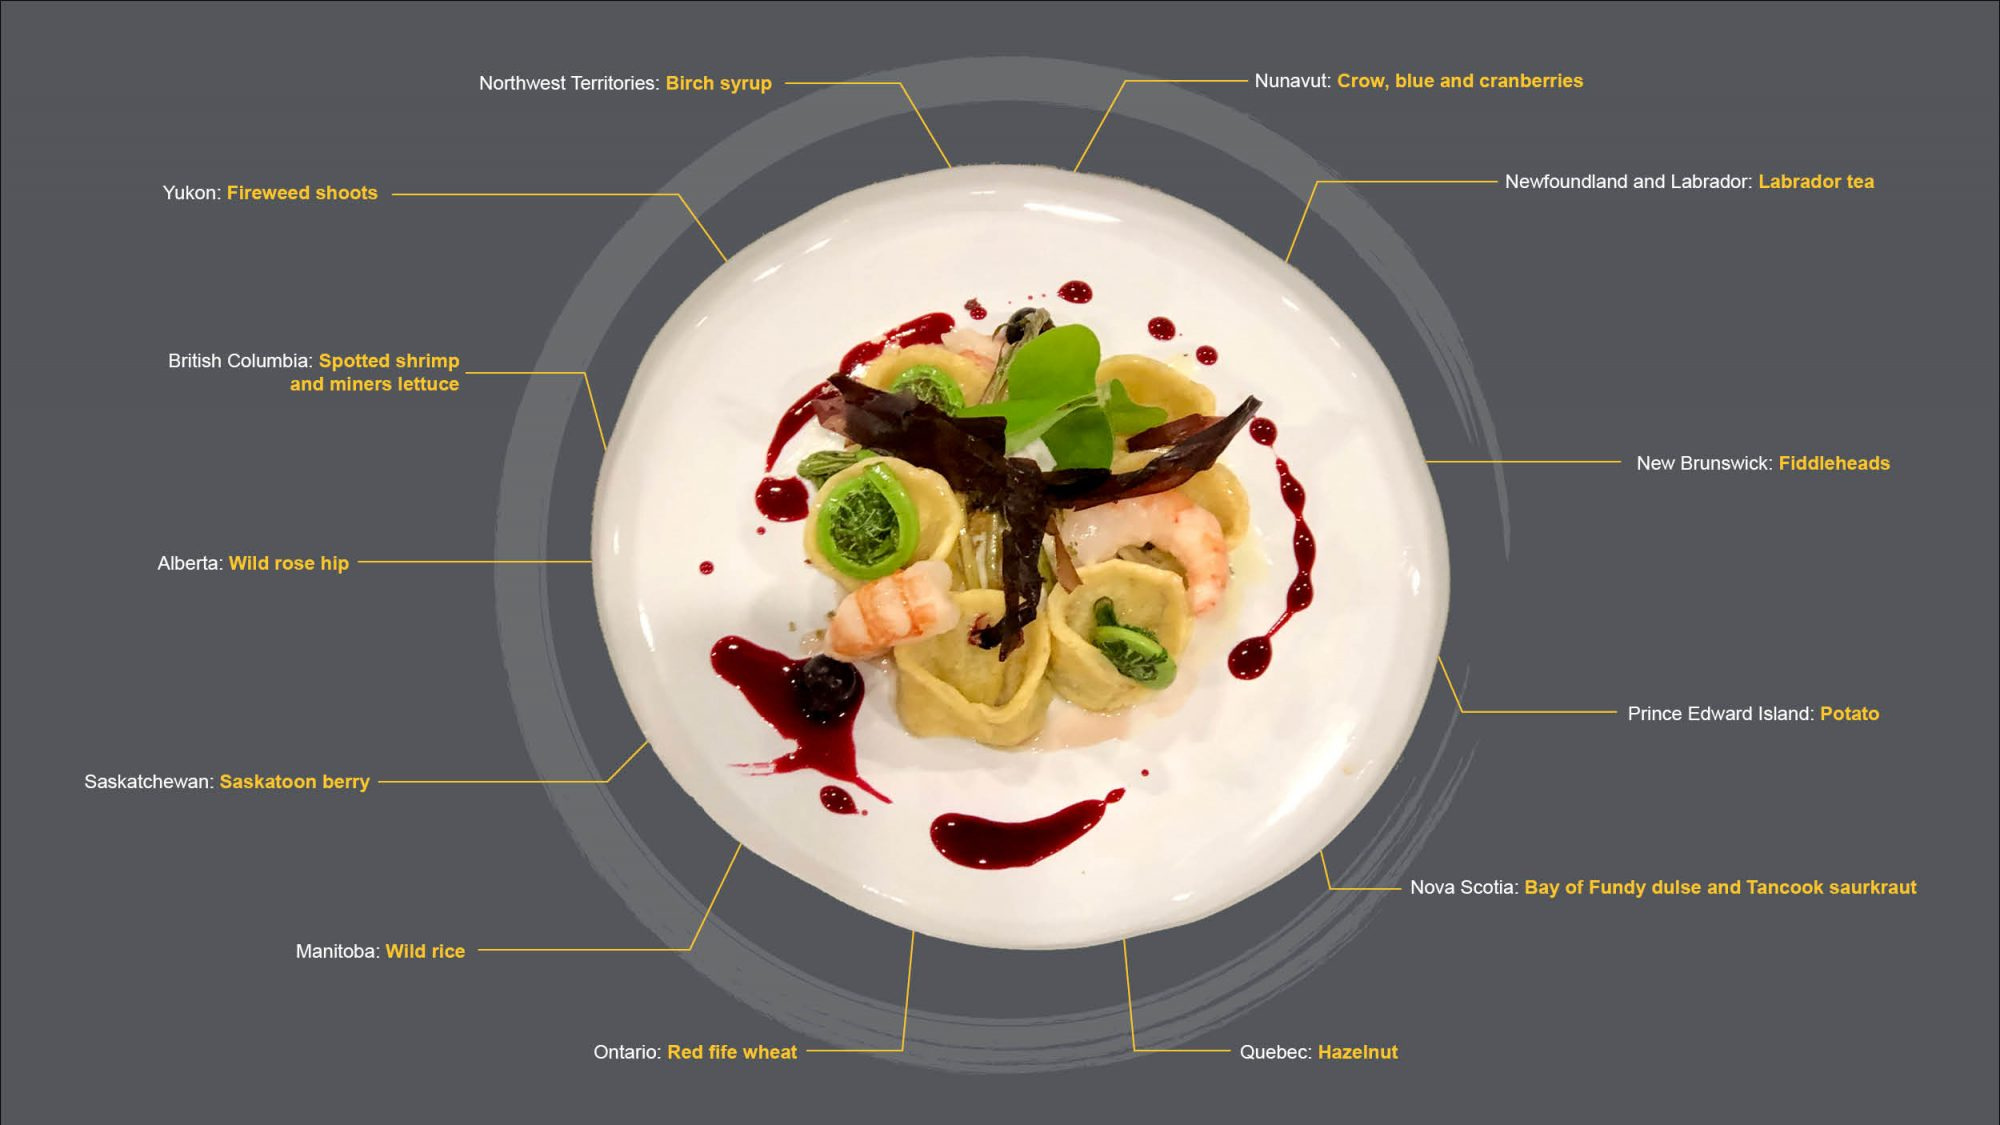 A diagram including an image Chef Andrea's plate, with text references to each ingredient and where they are from. Ingredient details listed in the caption.